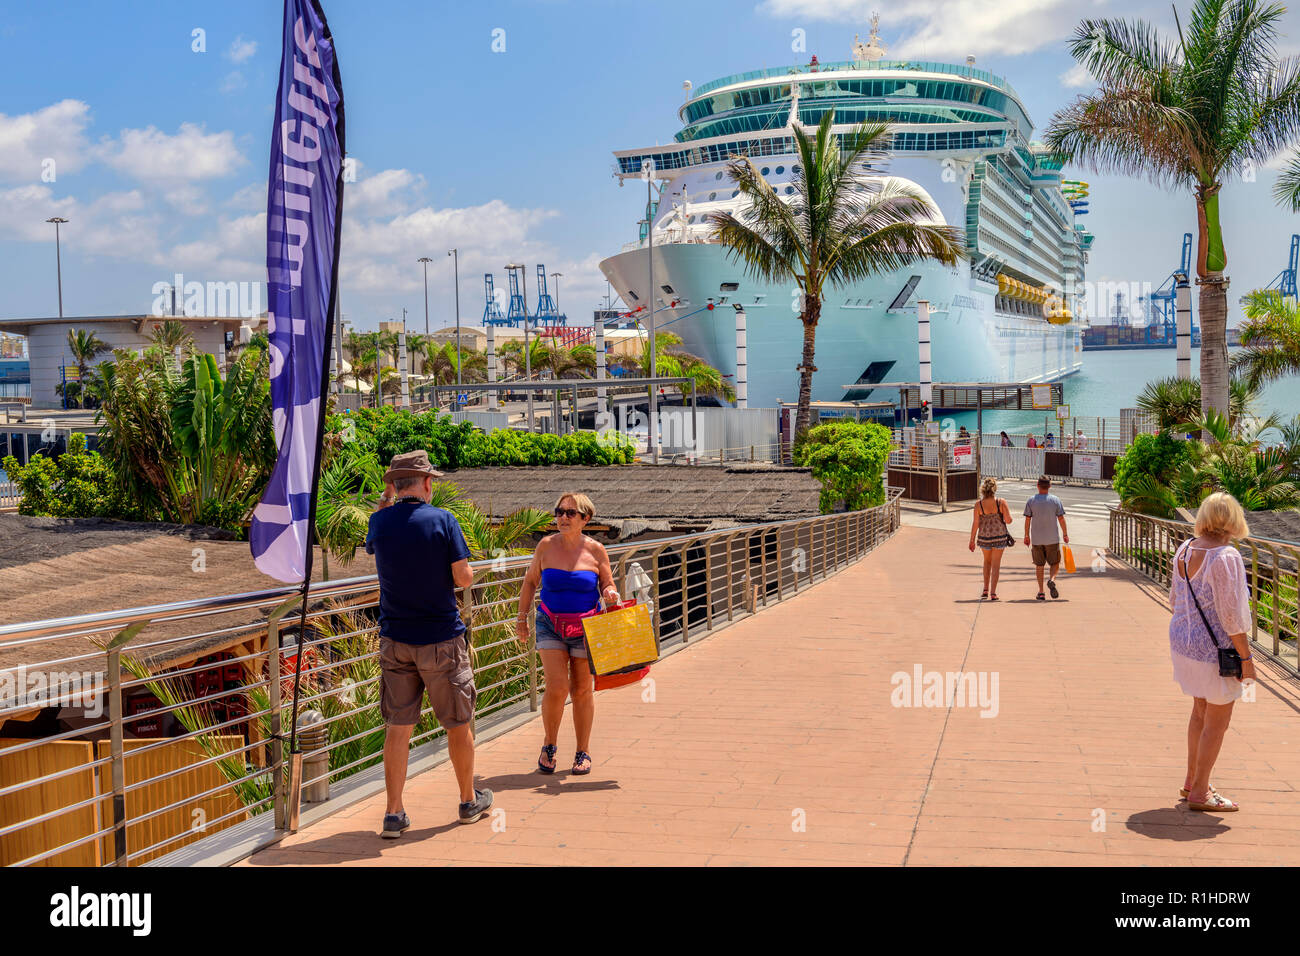 The royal caribbean ship Independence of the seas, docked at Las Palmas Gran canaria - Stock Image